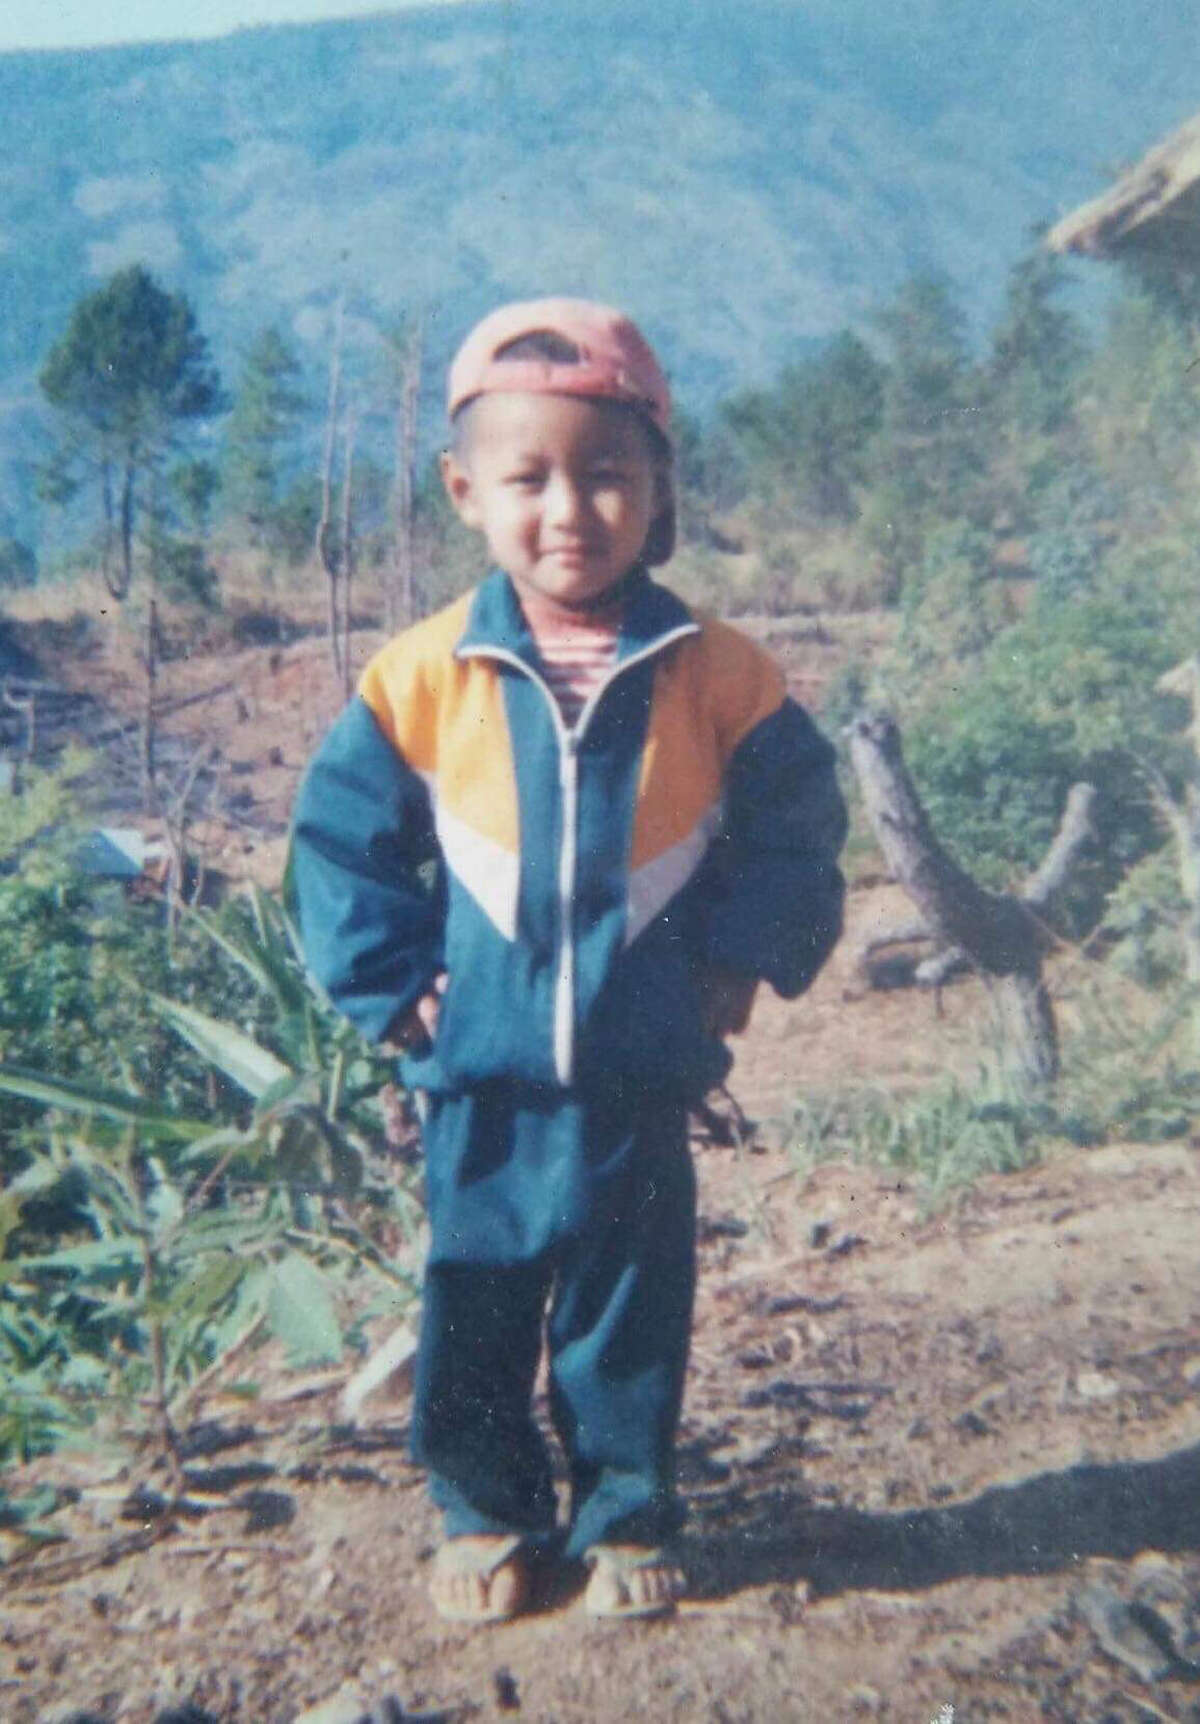 Francis HungMang in Burma as a child.